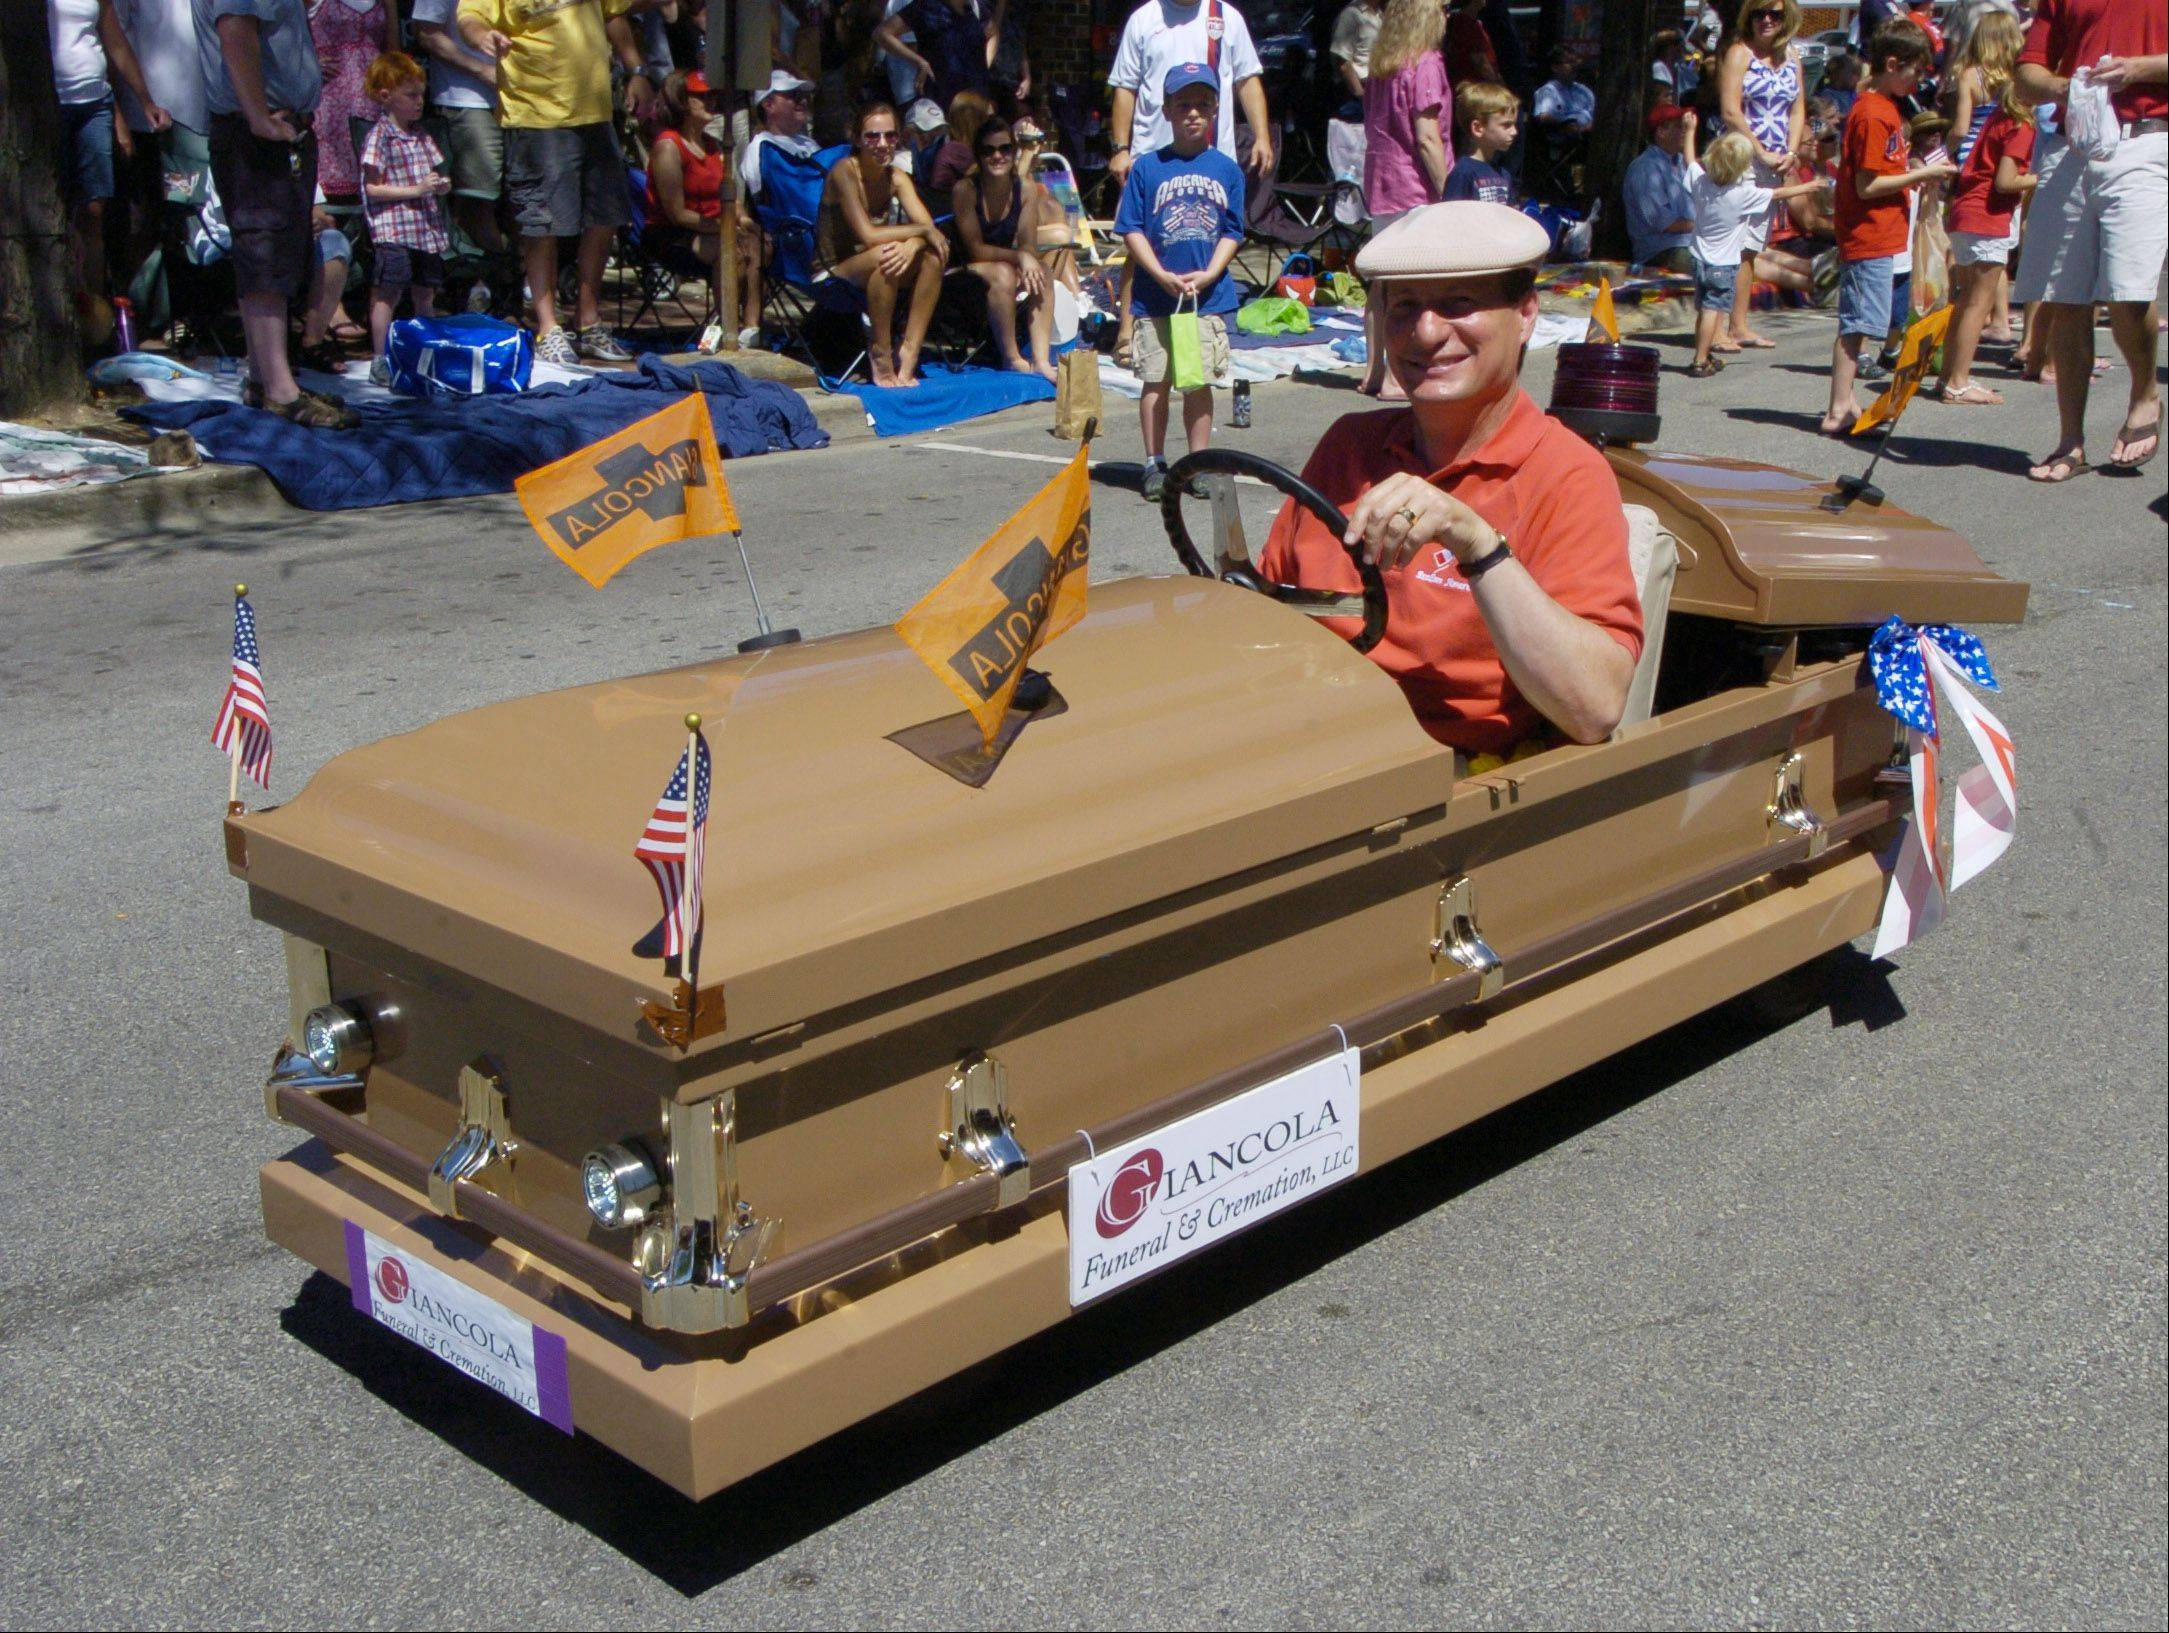 It's no ordinary float. Mark Giancola of Arlington Heights drives a casket during the parade Monday.